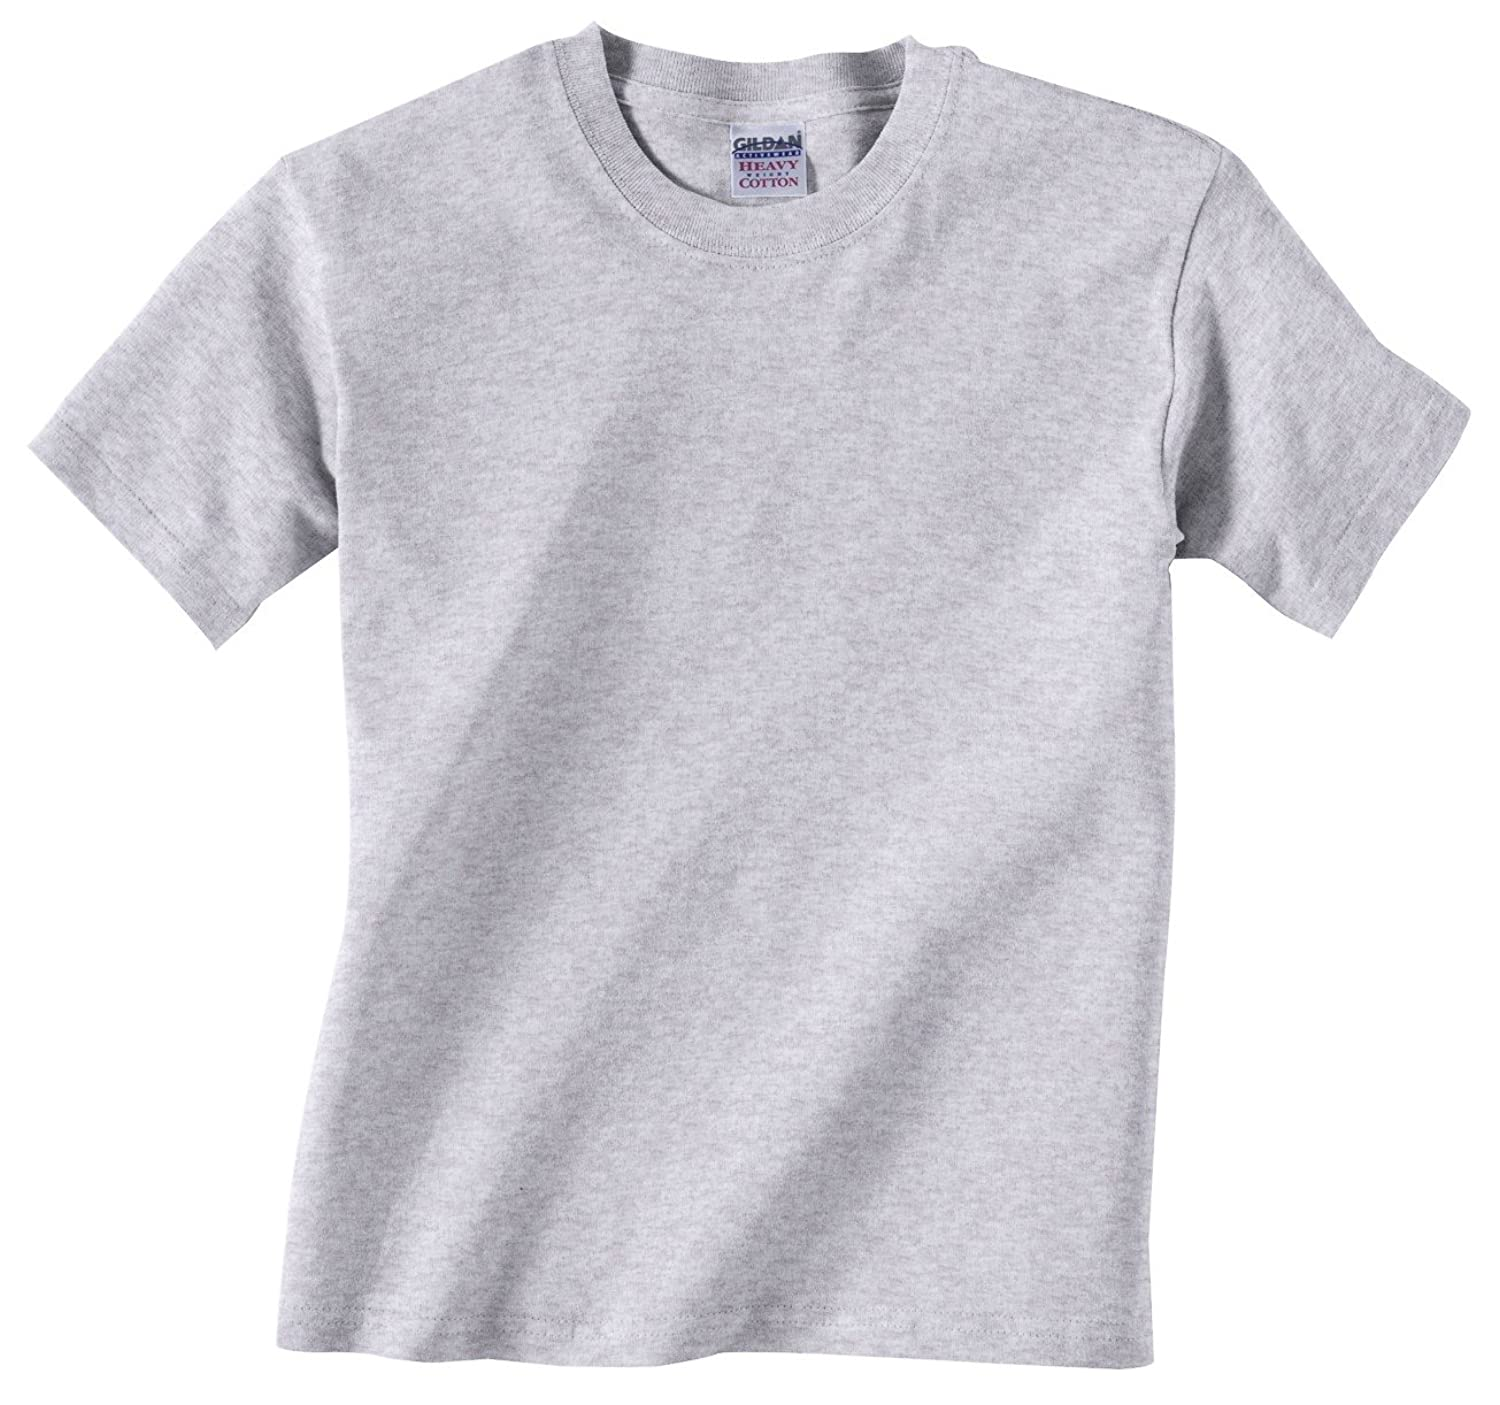 Find great deals on eBay for cotton plain white t-shirts. Shop with confidence.